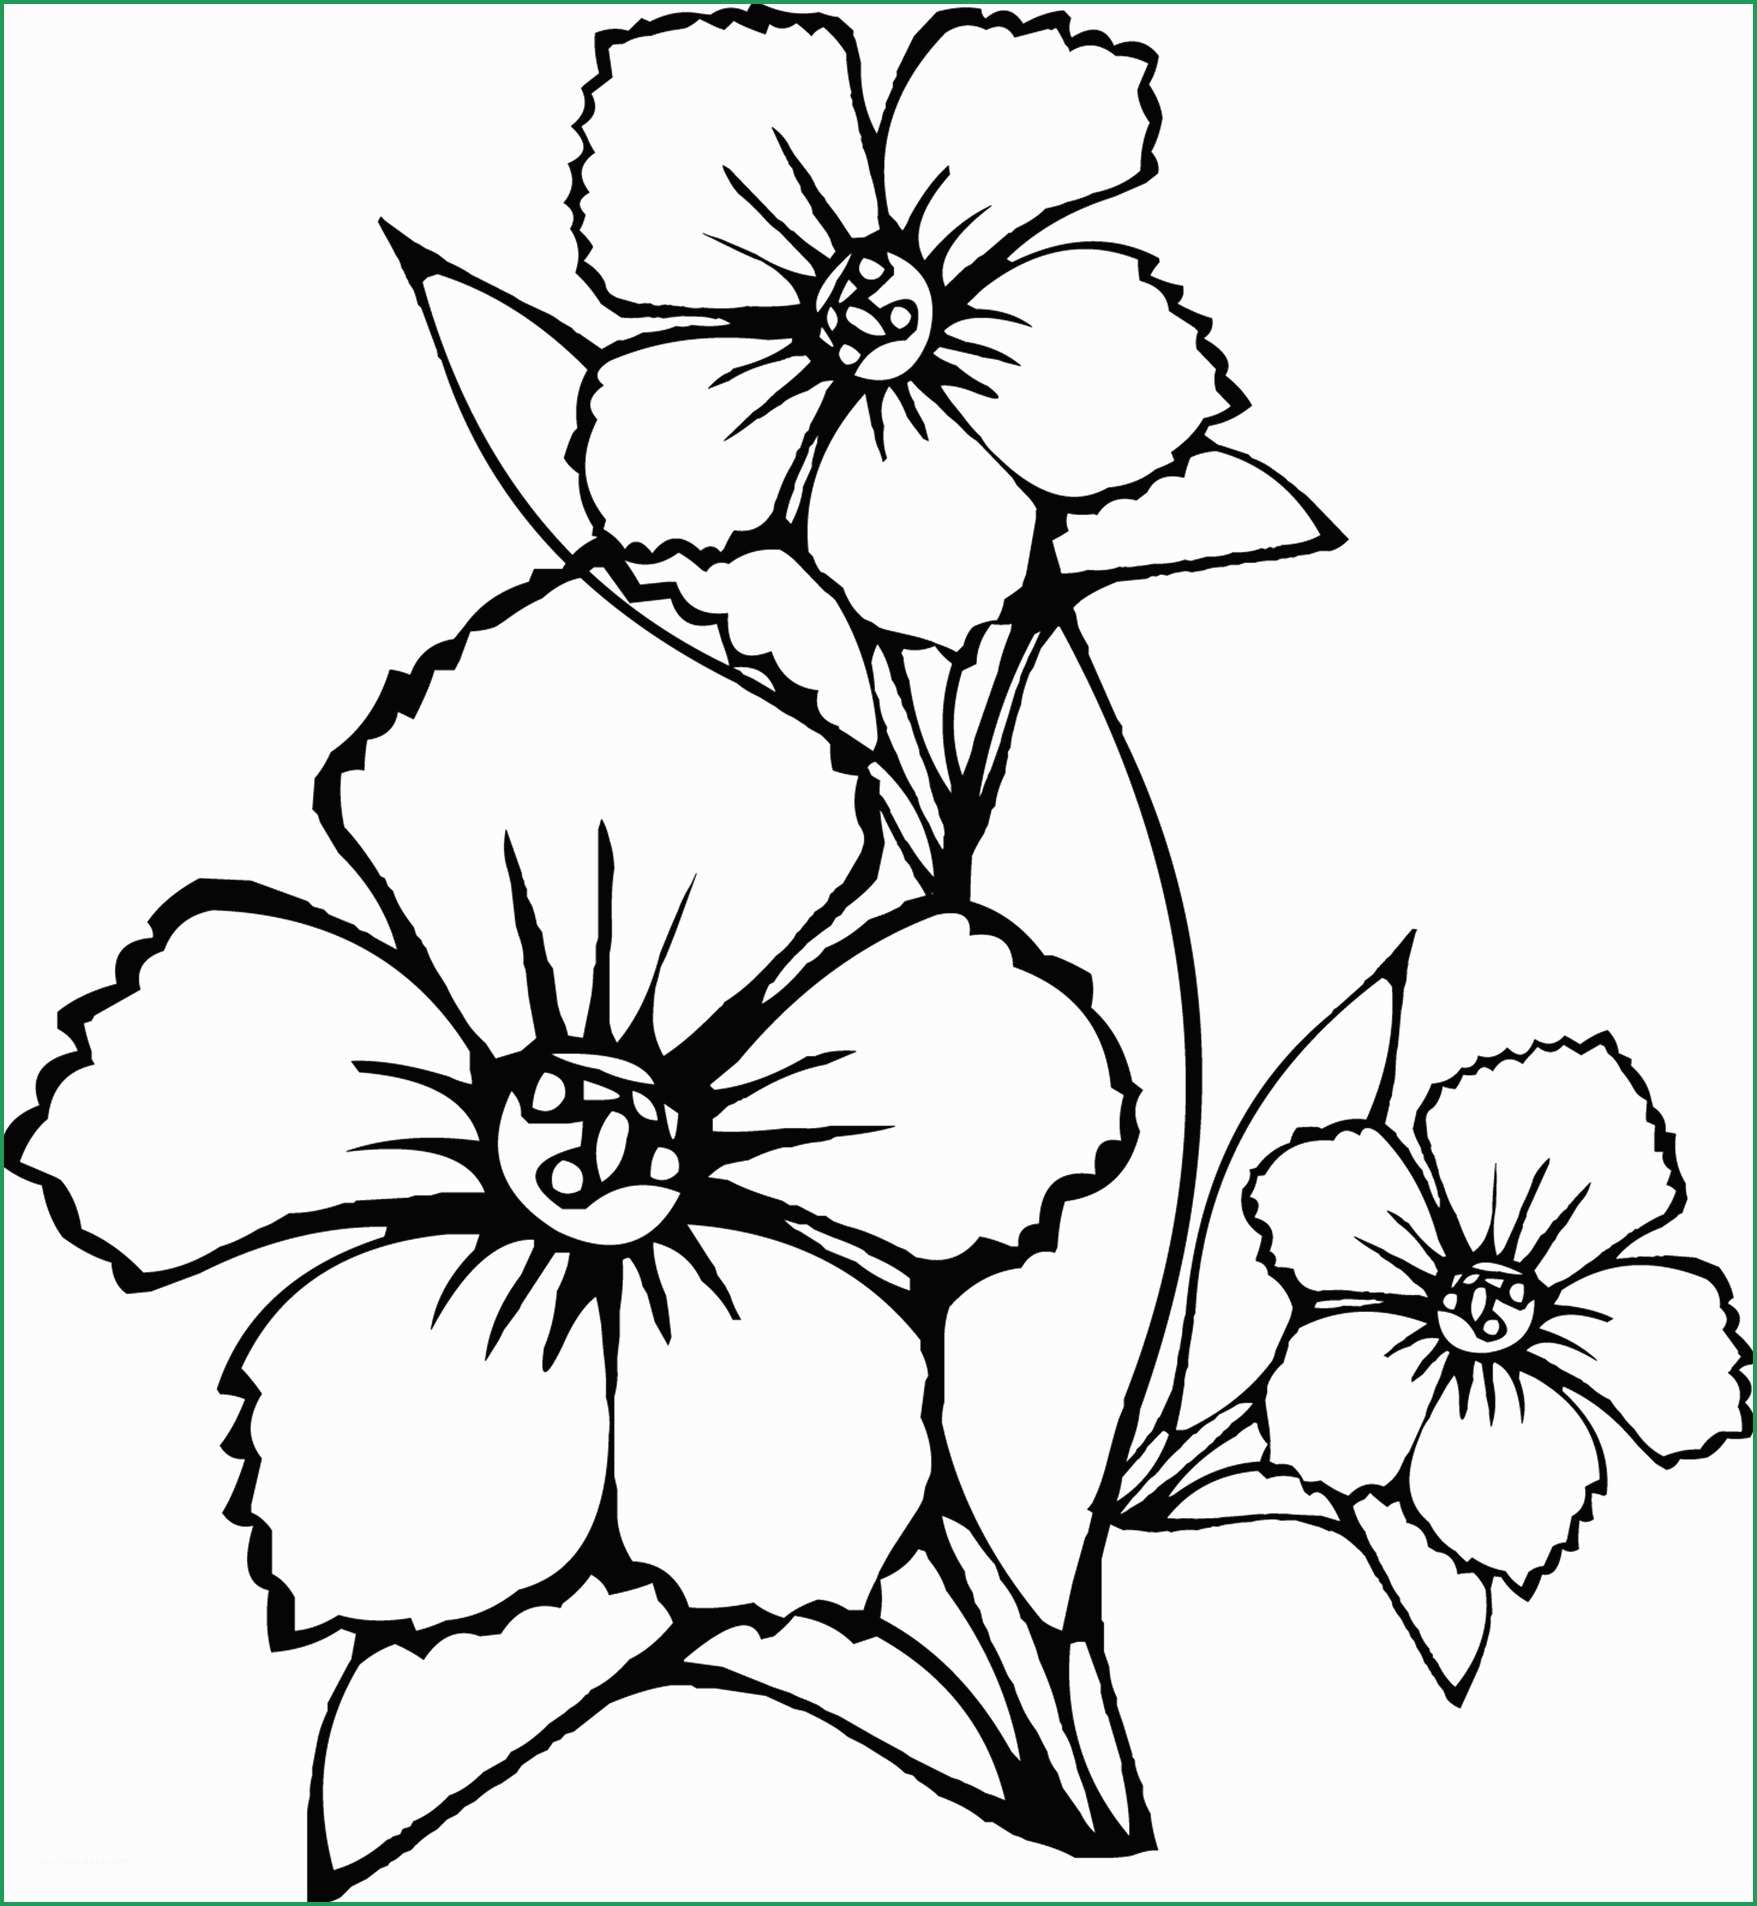 Free Printable Flower Coloring Pages Fabulous Models Of Flower Coloring Pages Coloring Pages